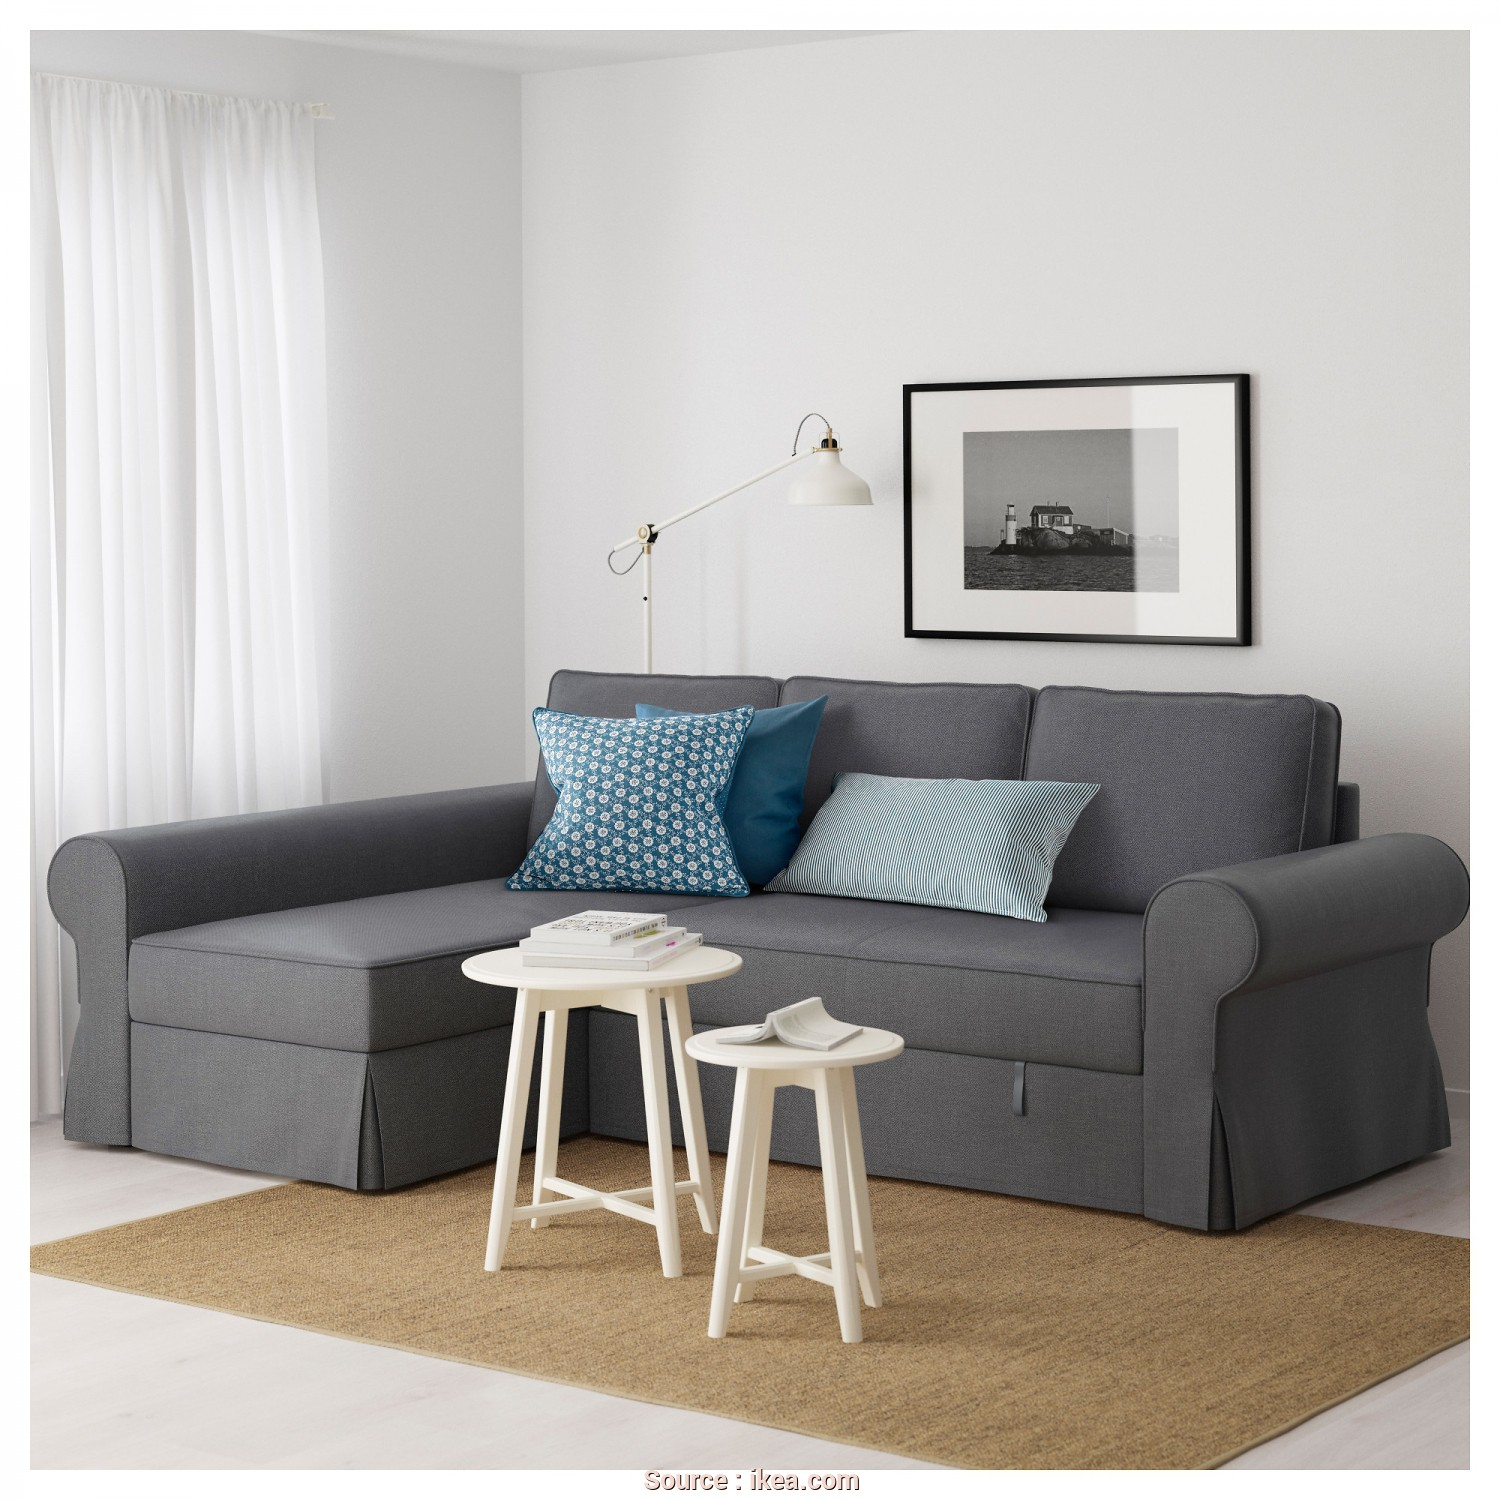 Ikea Backabro Sofa, With Chaise Instructions, Casuale BACKABRO Sofa, With Chaise Longue Nordvalla Dark Grey